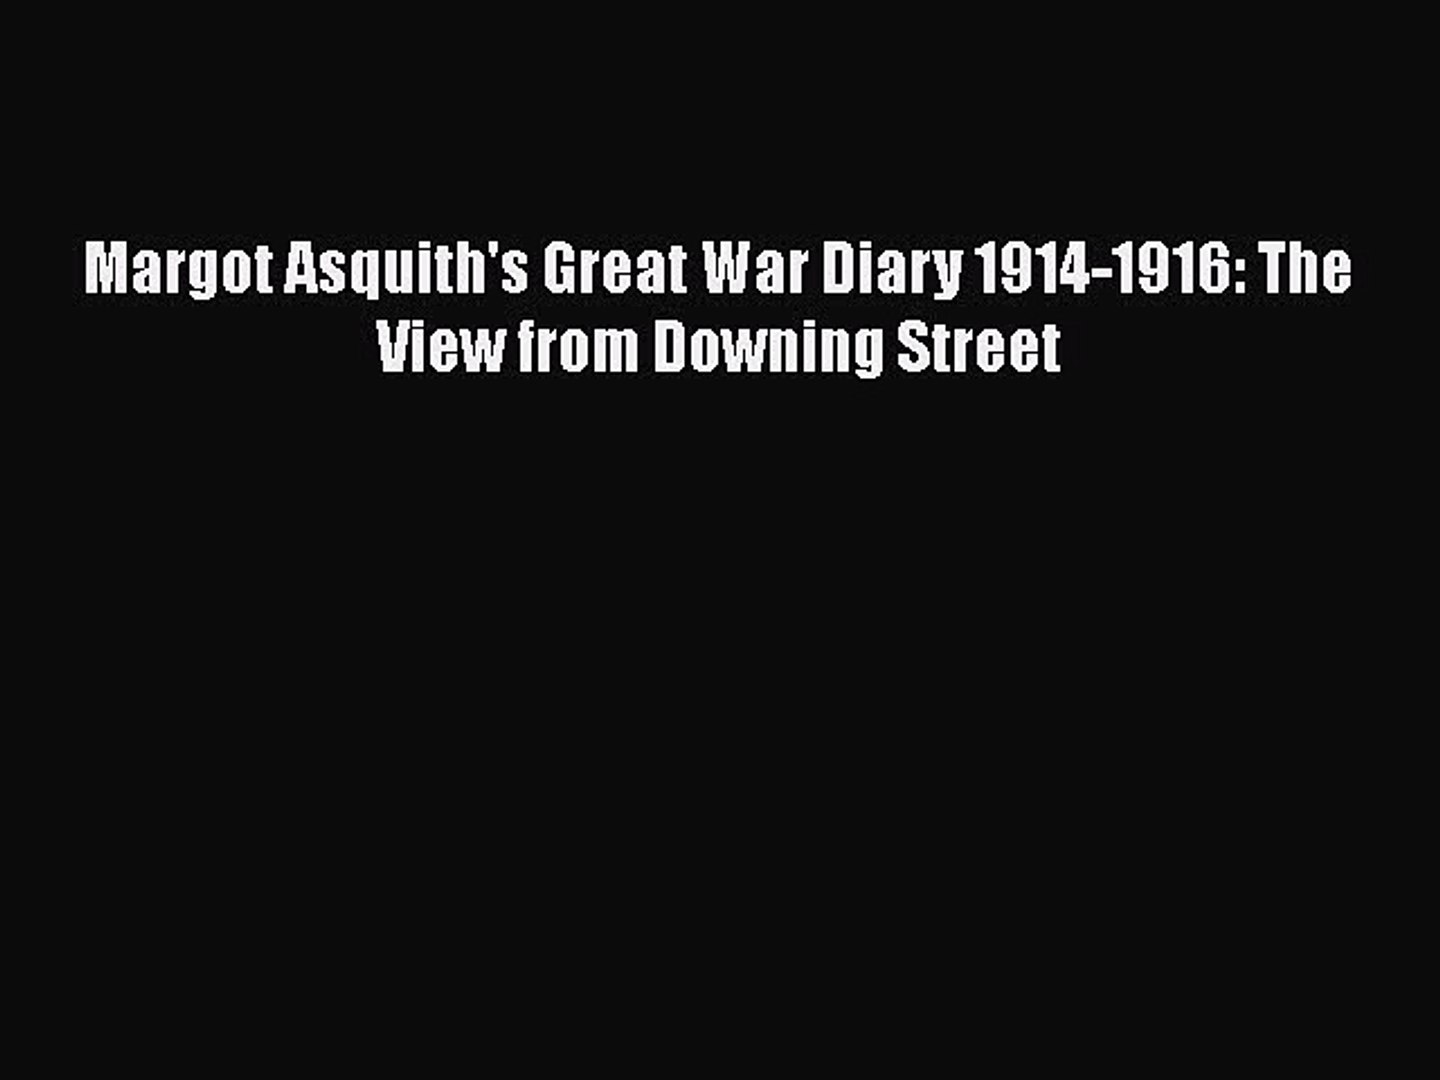 Read Margot Asquith's Great War Diary 1914-1916: The View from Downing Street Ebook Free